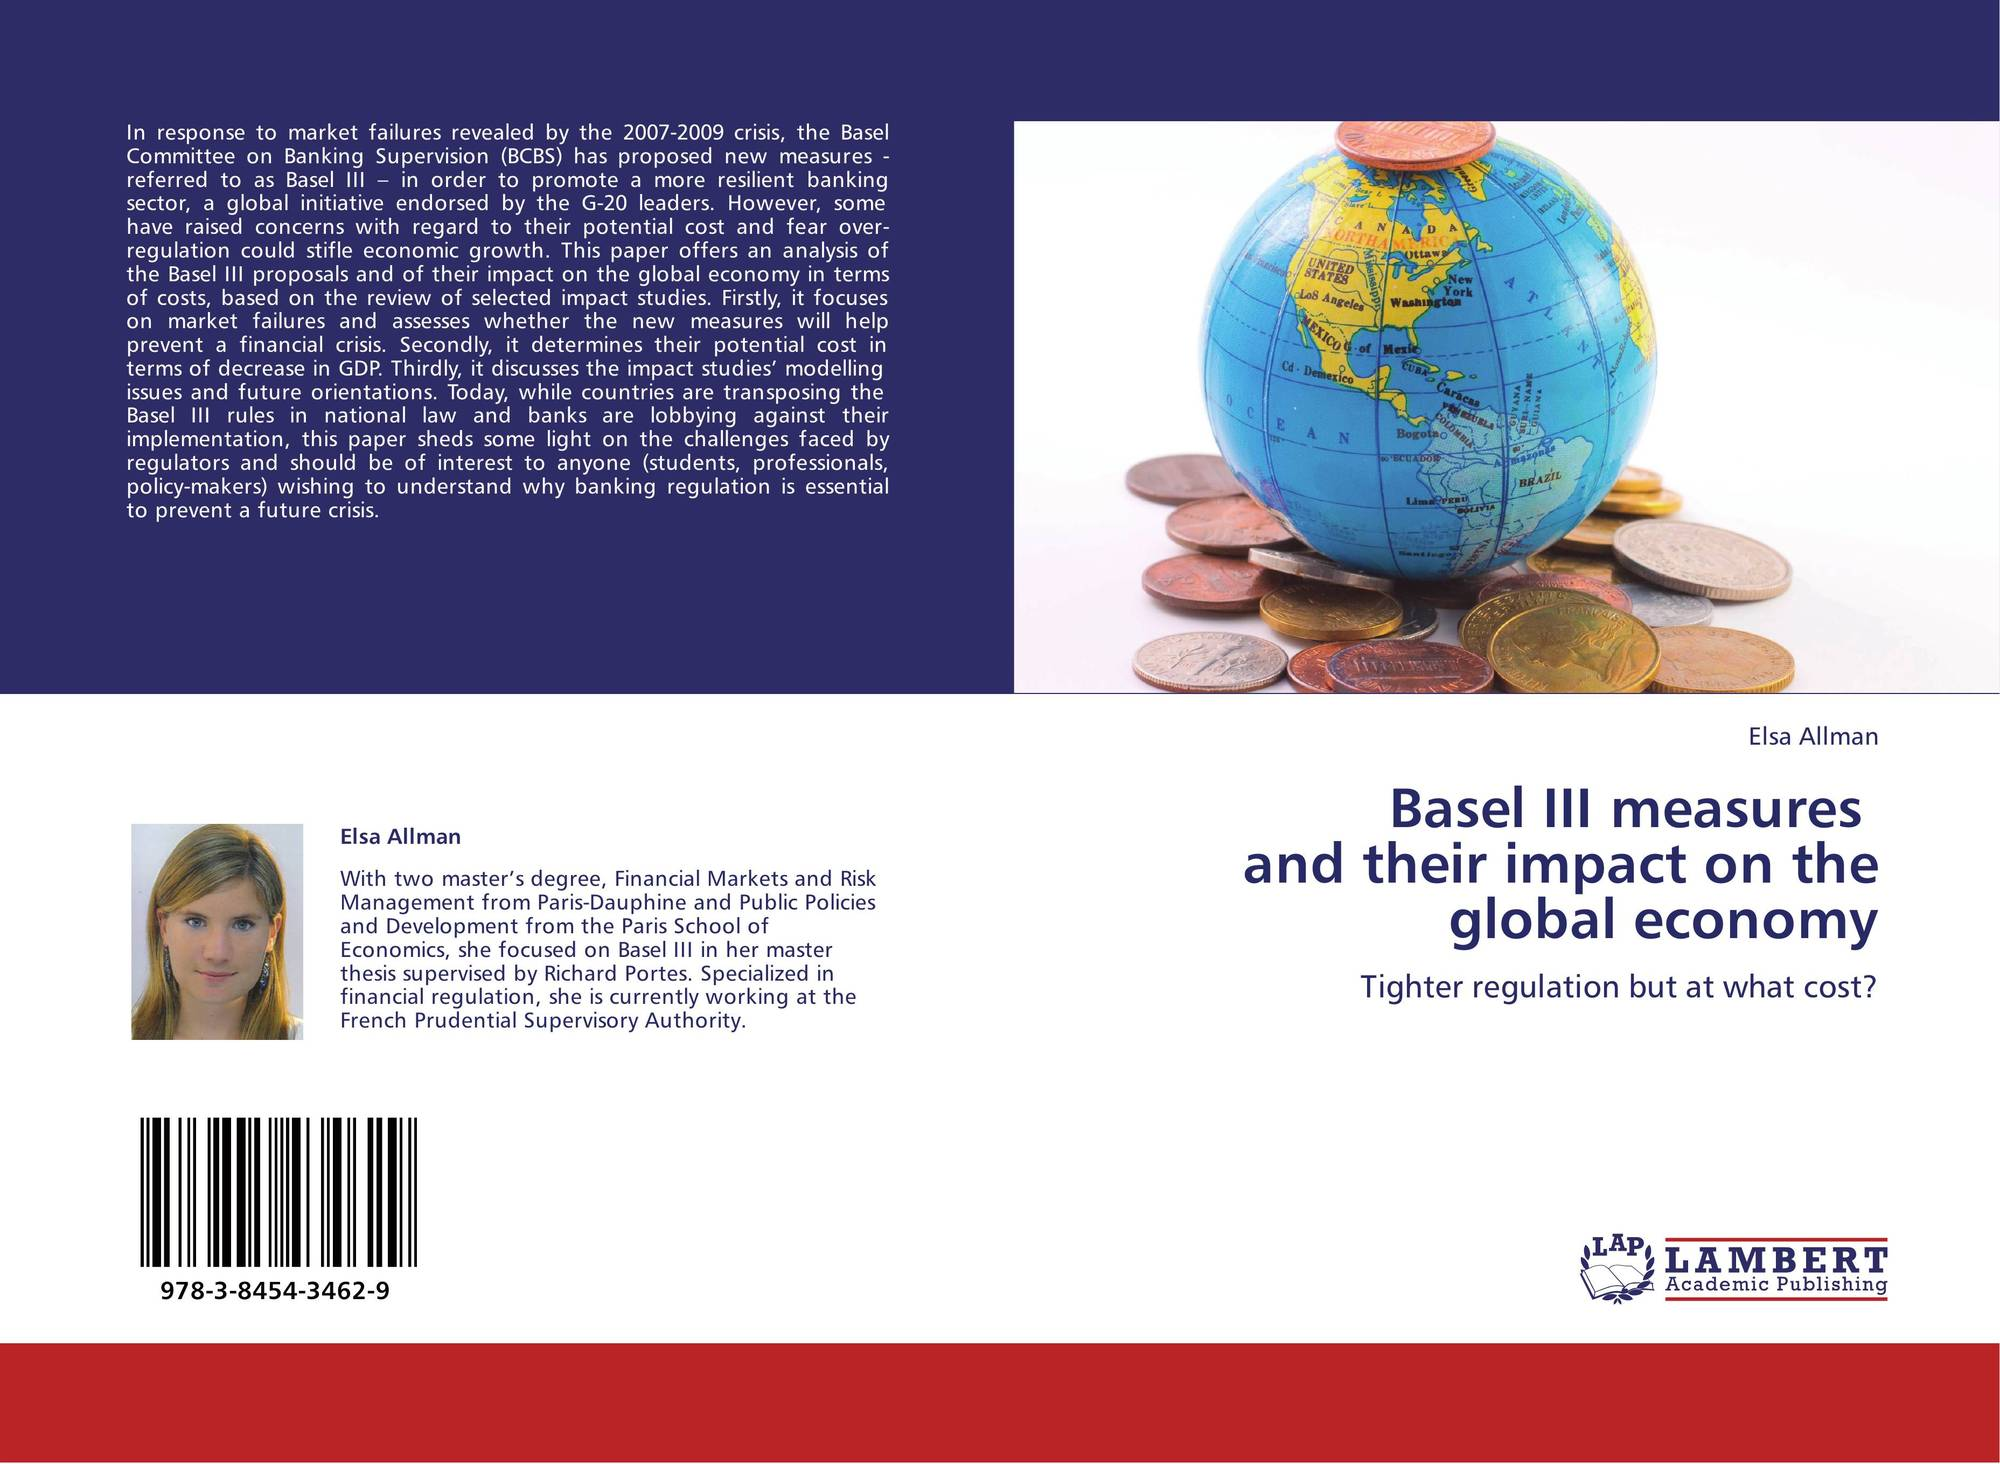 explain the impact of macroeconomic policy measures and the influence of the global economy on local An economic impact analysis attempts to measure or estimate the change in economic activity in a specified region, caused by a specific business, organization, policy, program, project, activity, or other economic event.